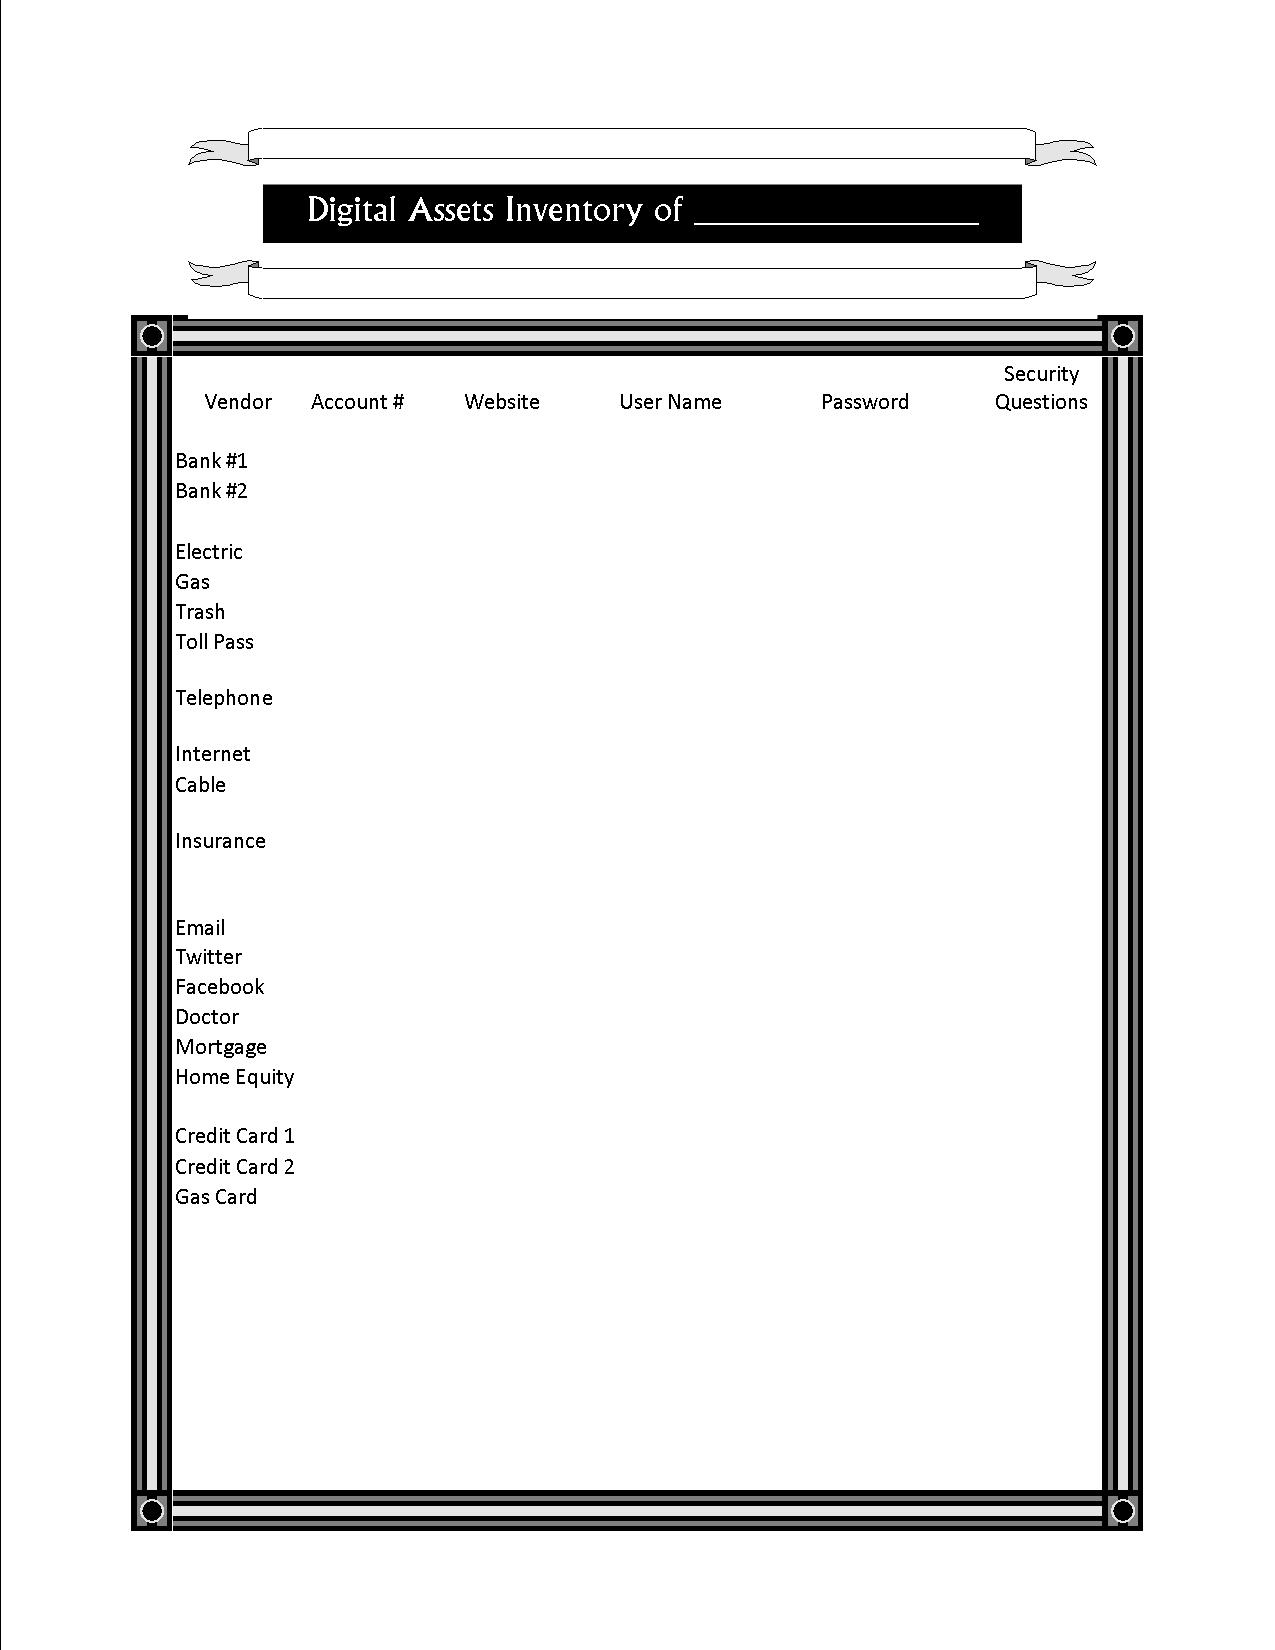 Sample Digital Asset Inventory « Horowitz Law Offices